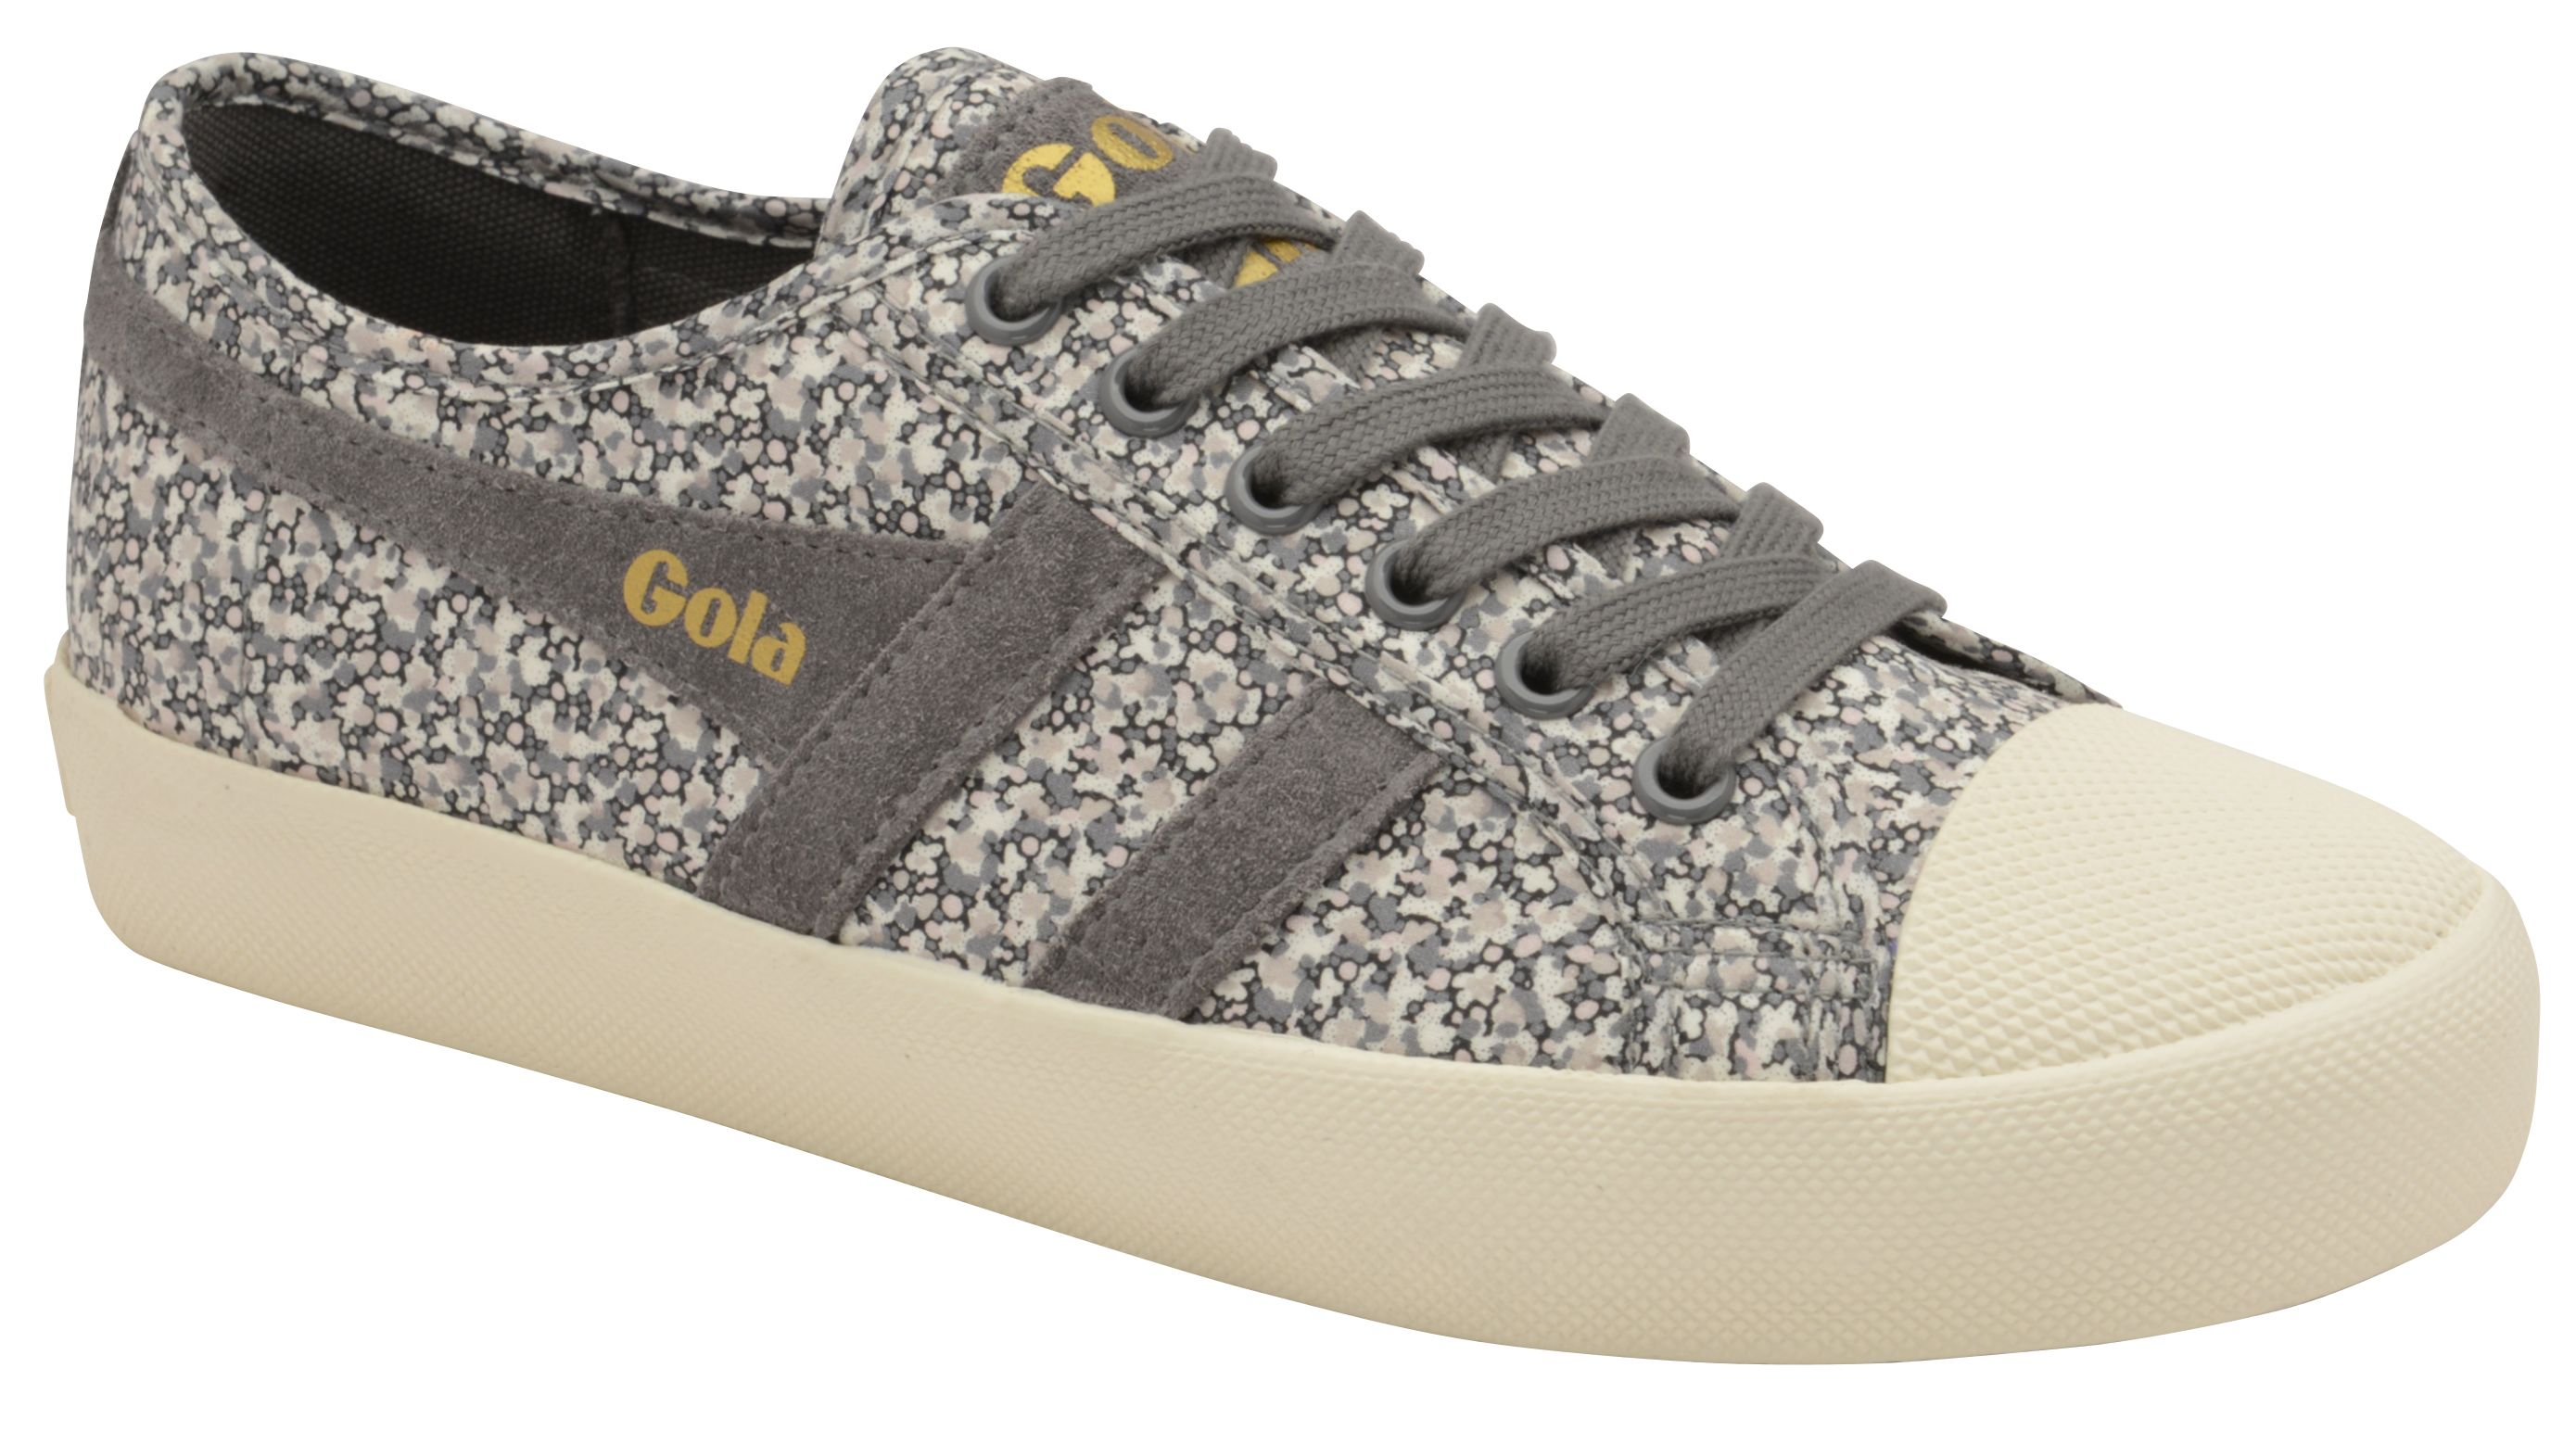 Gola Coaster Liberty Pp Lace Up Trainers, Grey